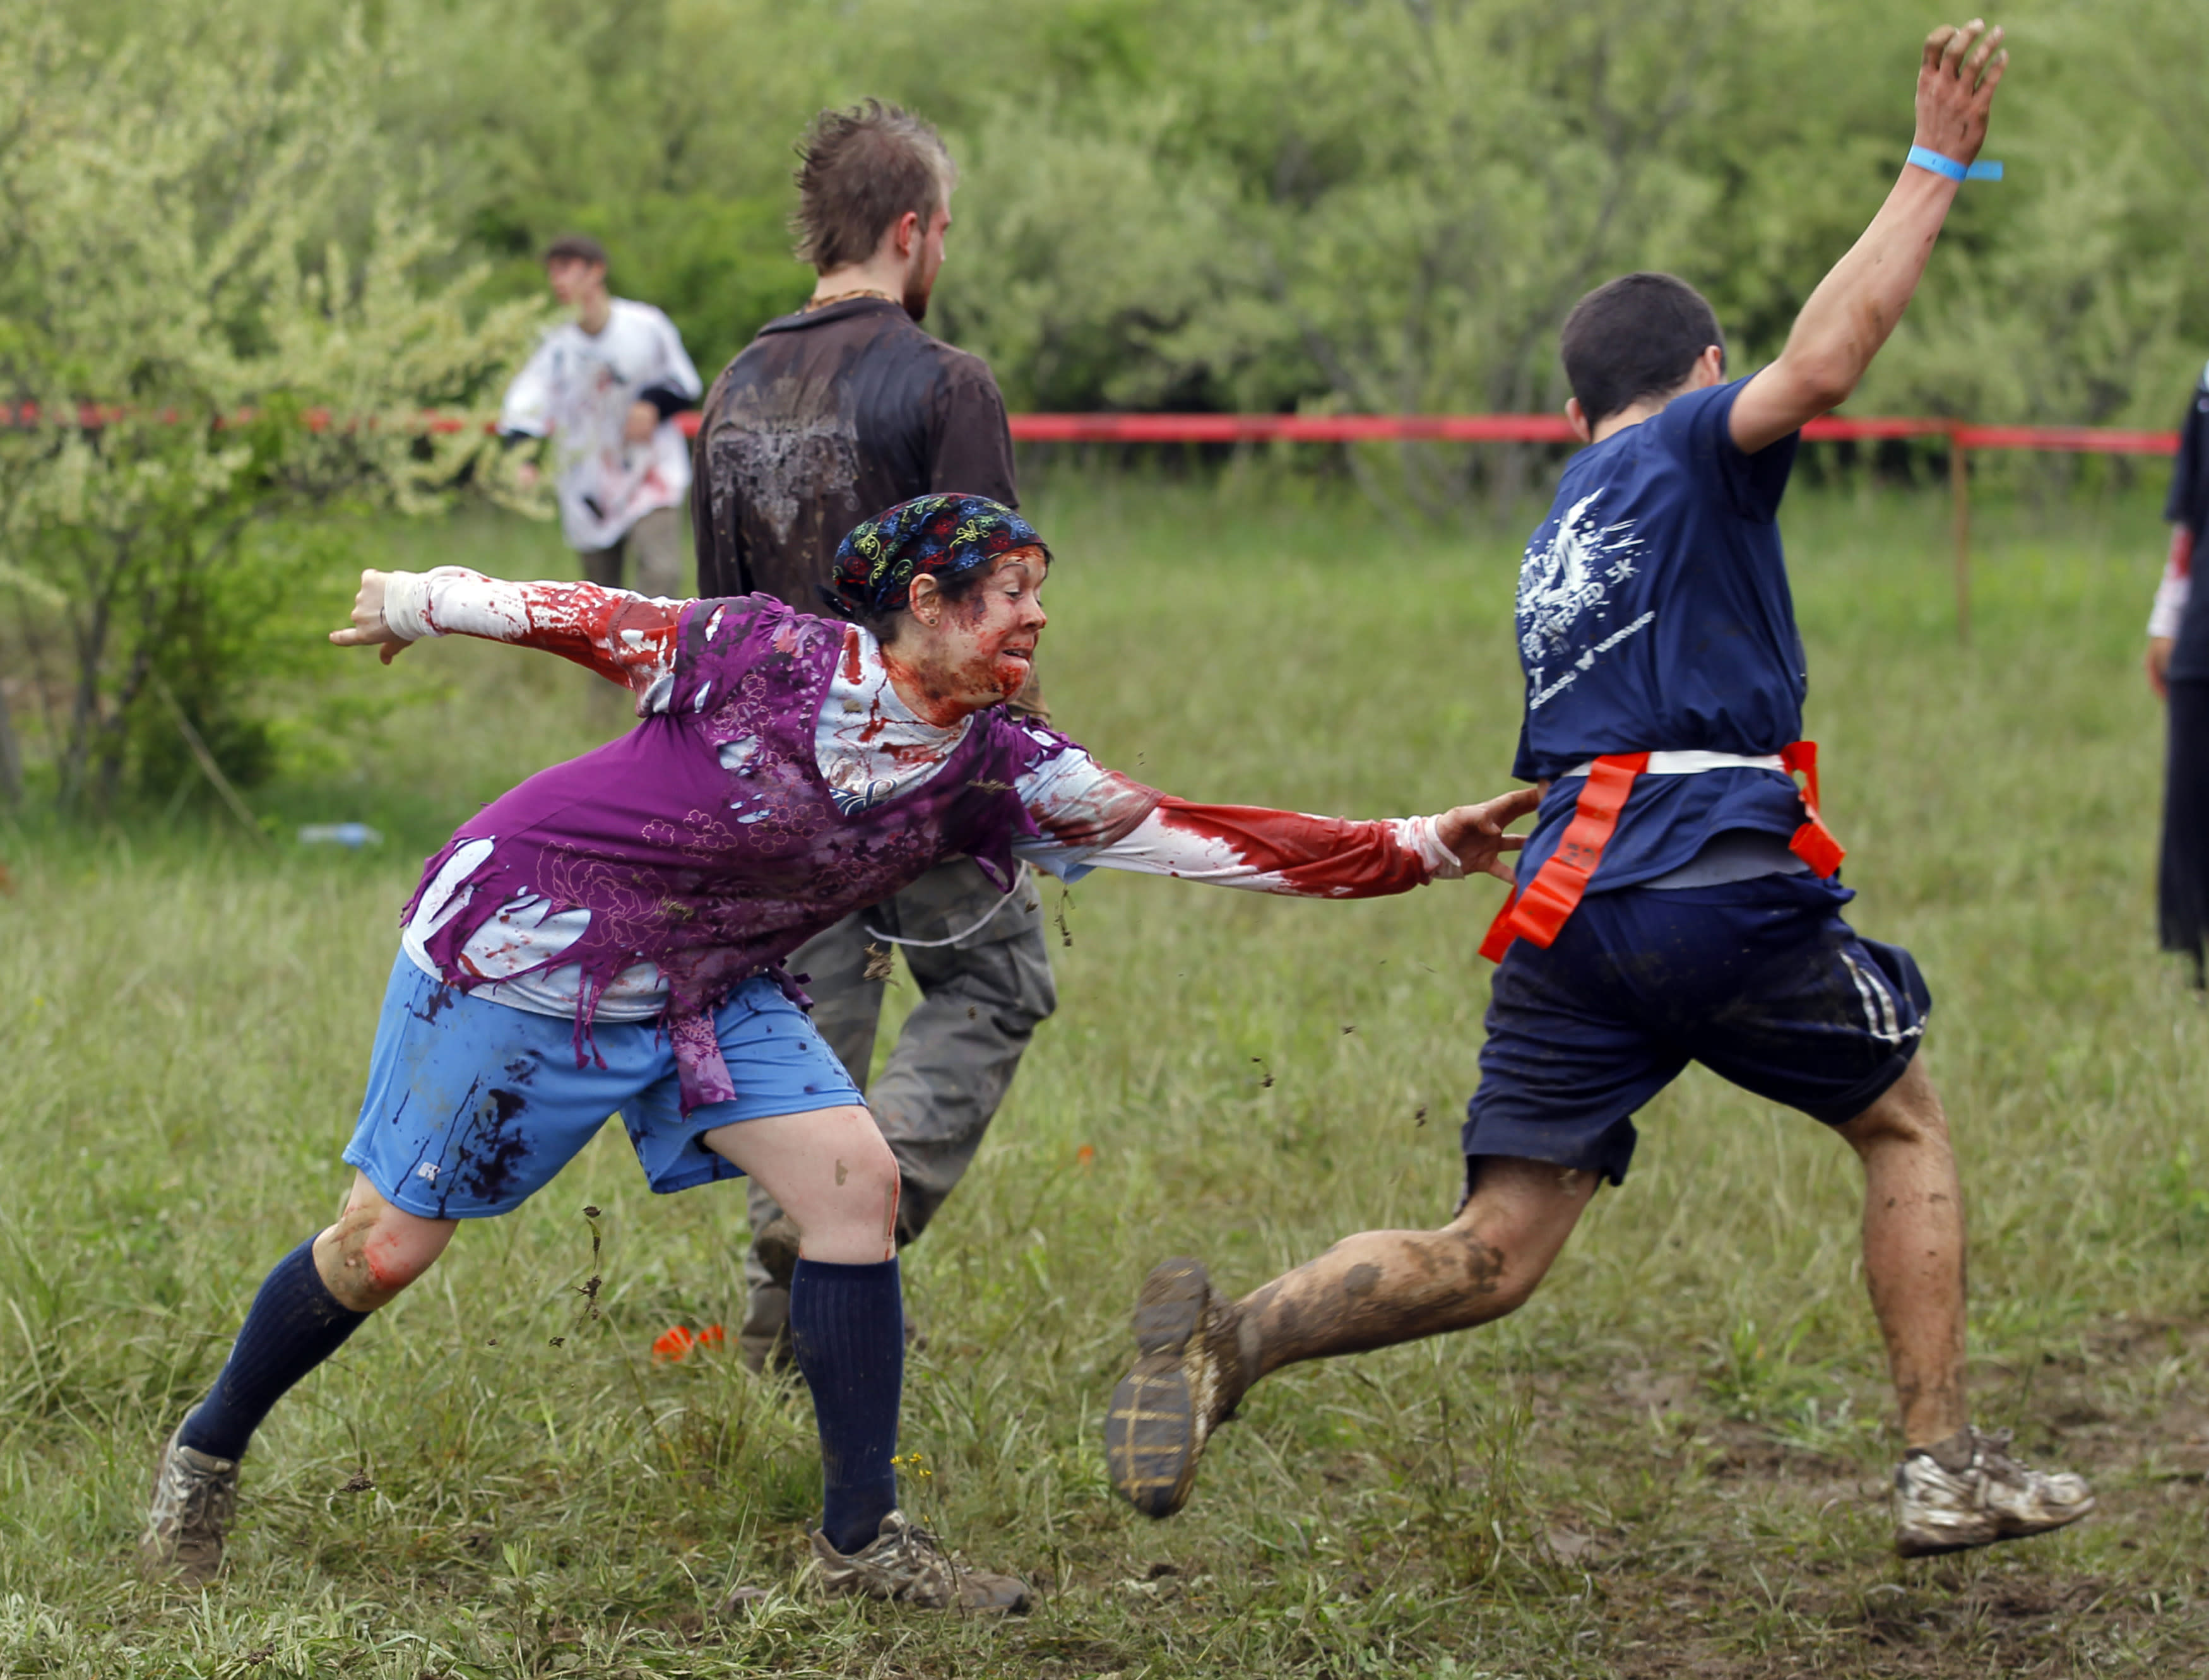 """A zombie chases a runner (R) on the """"Run for Your Lives"""" 5K obstacle course race in Amesbury, Massachusetts May 5, 2012. Runners face man-made and natural obstacles on the course, while being chased by zombies, who try to take """"health"""" flags off the runners belts. REUTERS/Brian Snyder"""